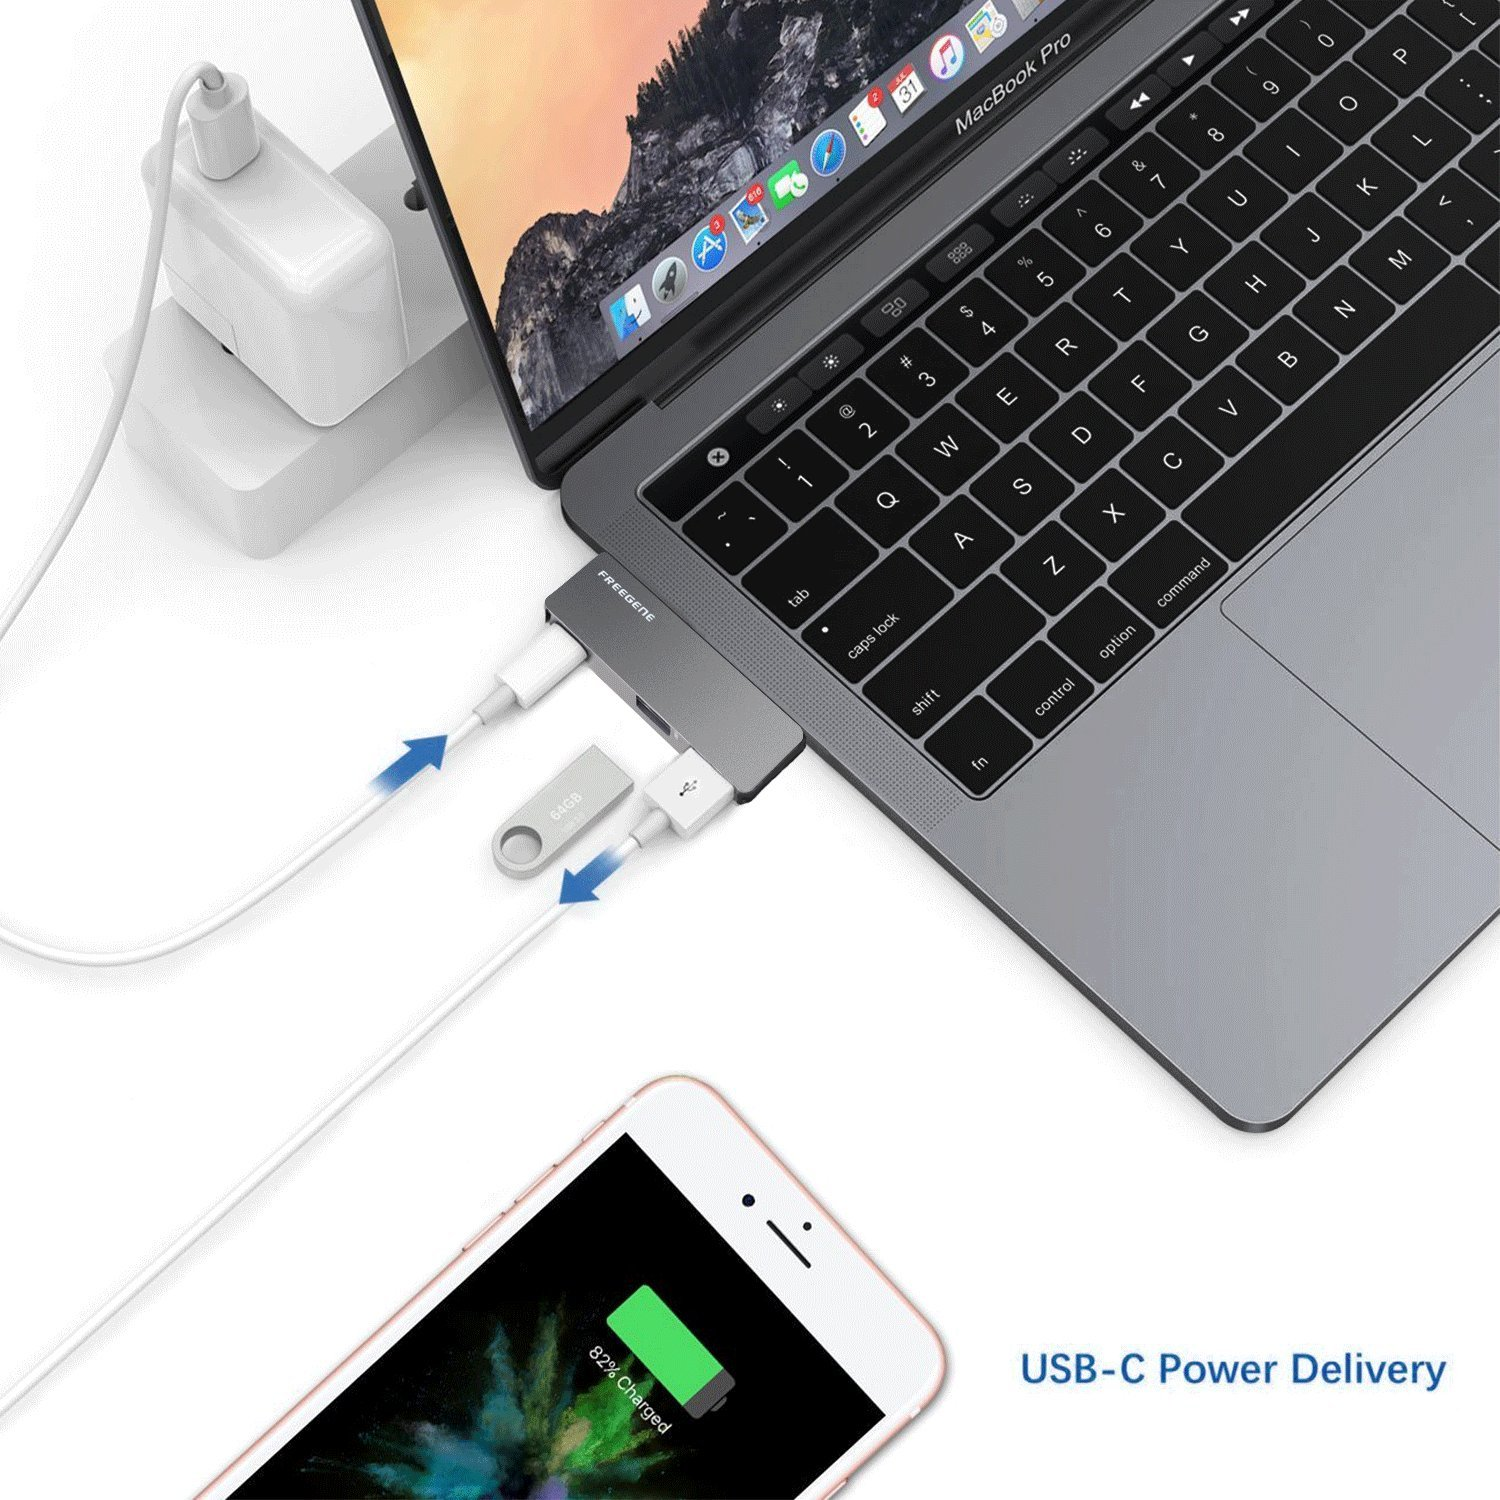 USB Type-C HUB Adapter - Aluminum Pass Through Charging Type-c Hub with 40Gbs Thunderbolt 3, USB 3.0 Port, USB 2.0 Port for New 13'' or 15'' MacBook Pro 2016 and 2017 by OneOdio FREEGENE (Space Grey) by OneOdio (Image #1)